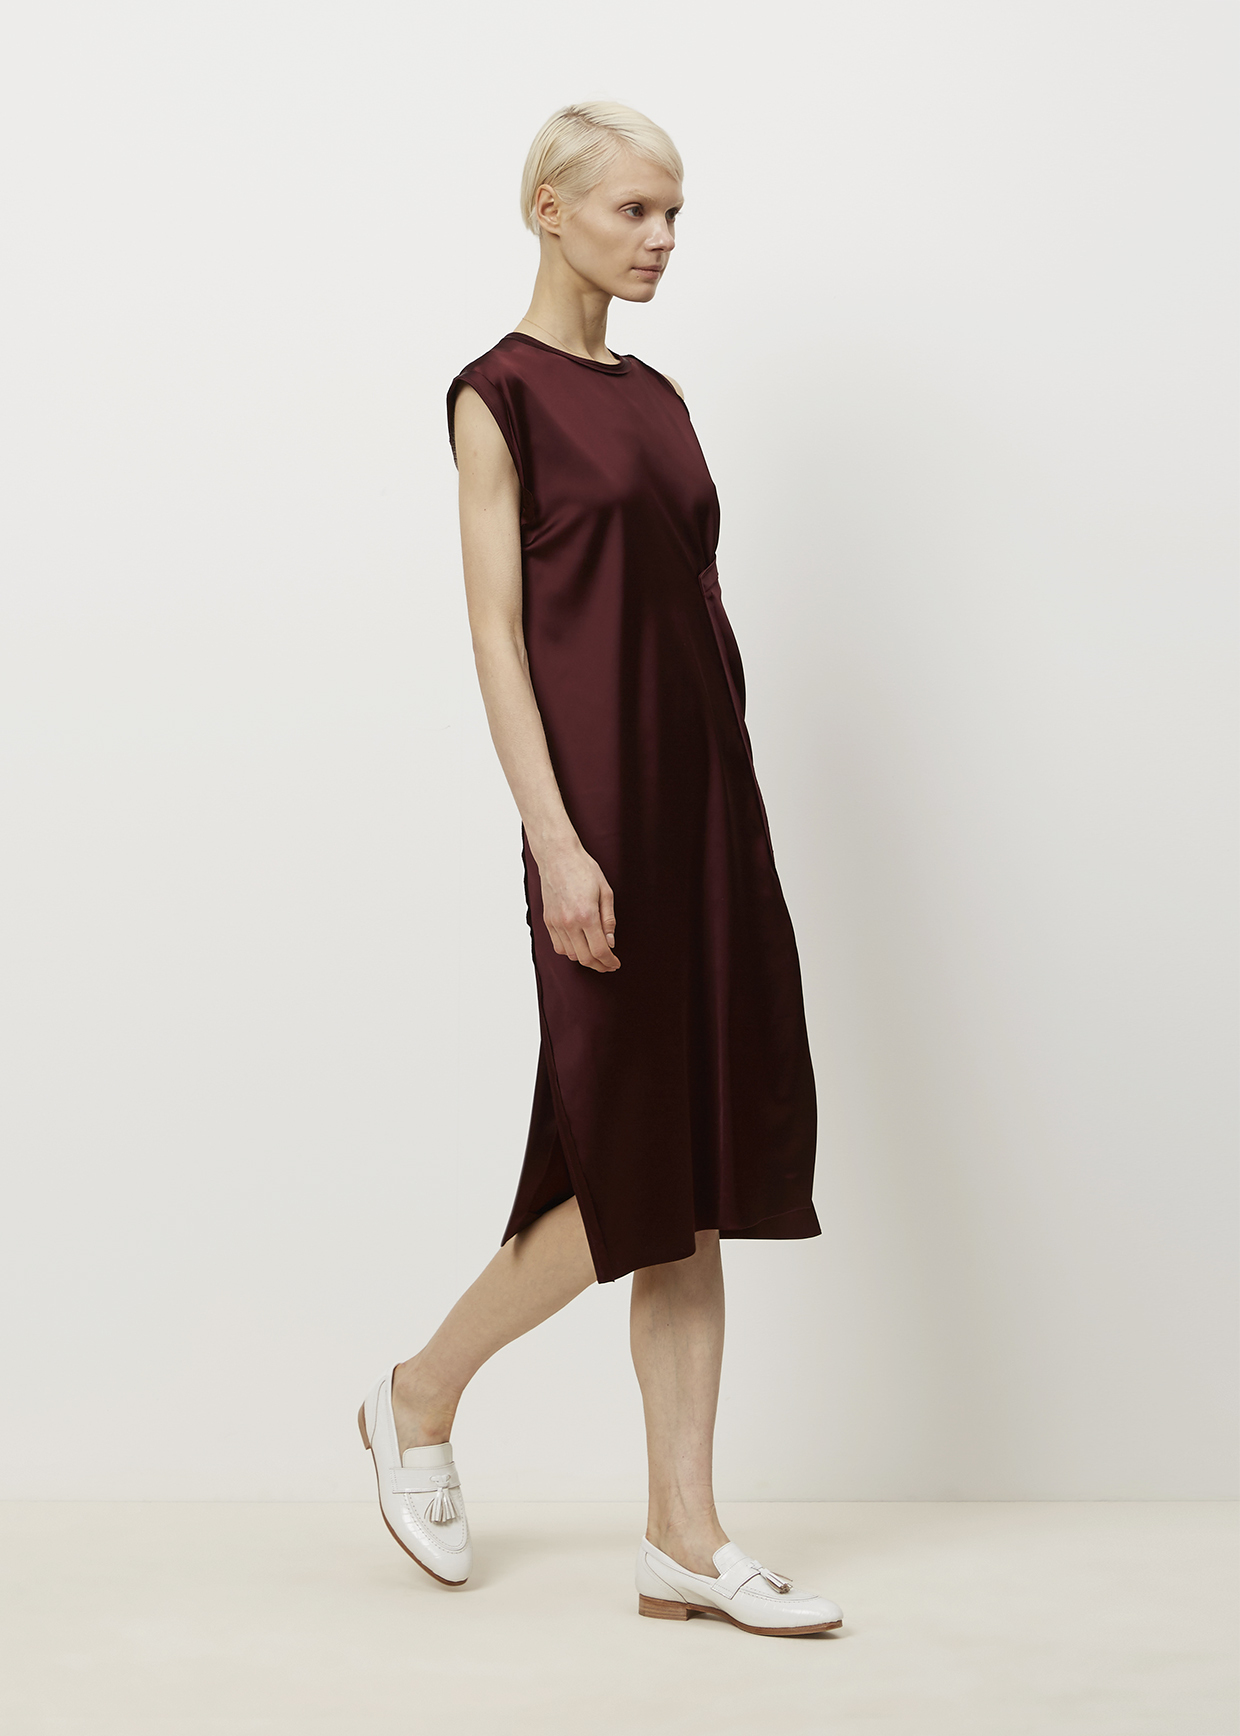 7eed7269ba1b Dress Lyst Studios Satin Catlin Acne Bordeaux nqCxqw8X